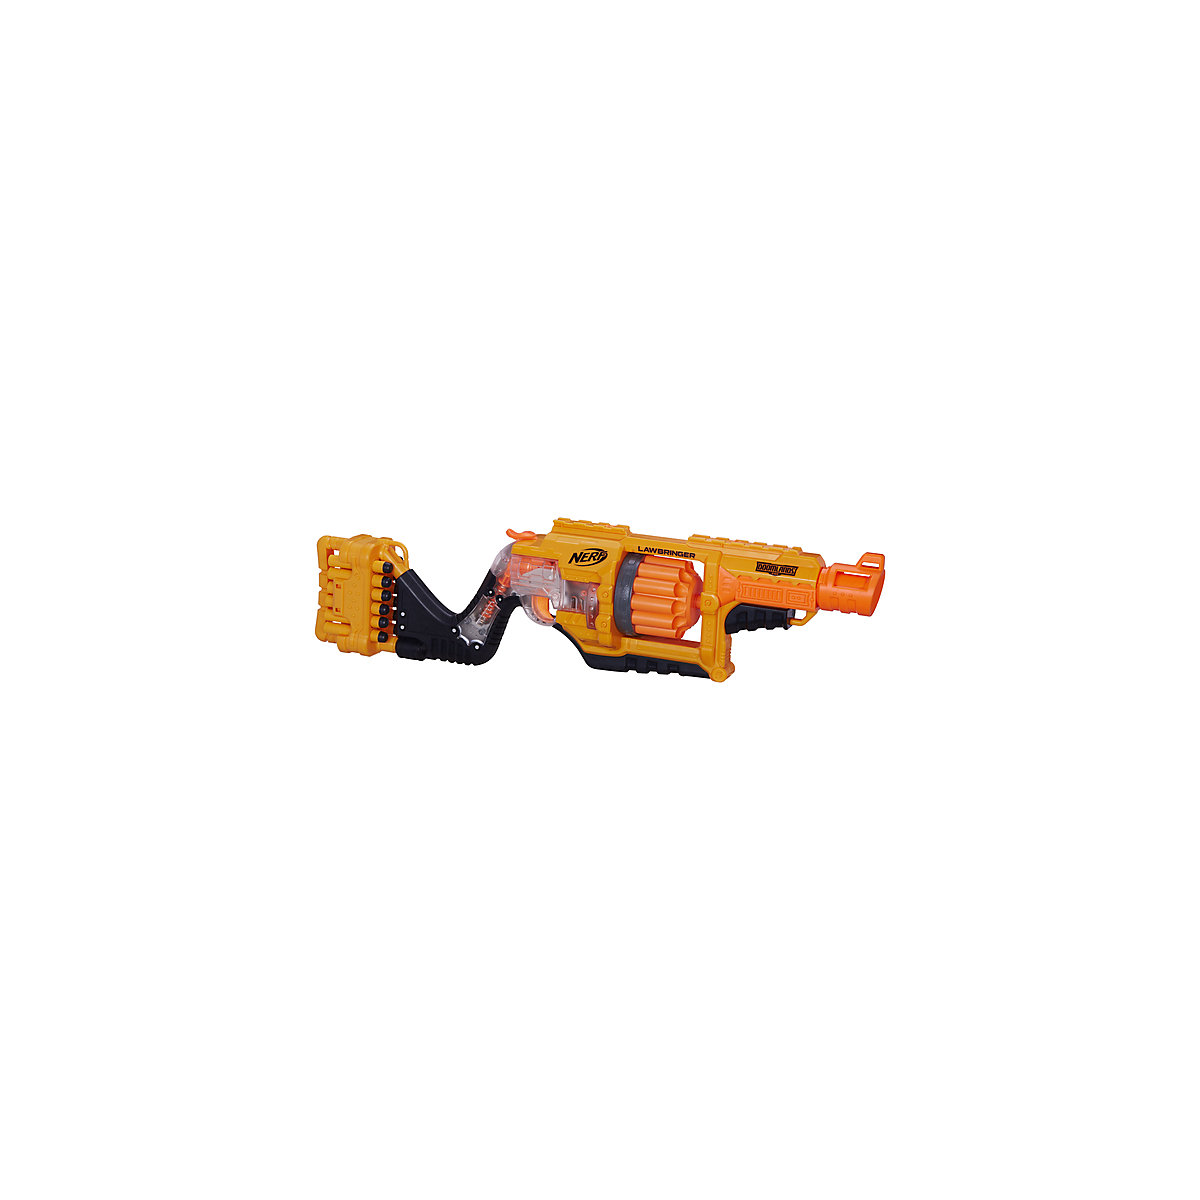 Toy Guns NERF 10023651 Children Kids Toy Gun Weapon Blasters Boys Shooting games Outdoor play toy guns nerf 3550830 children kids toy gun weapon blasters boys shooting games outdoor play